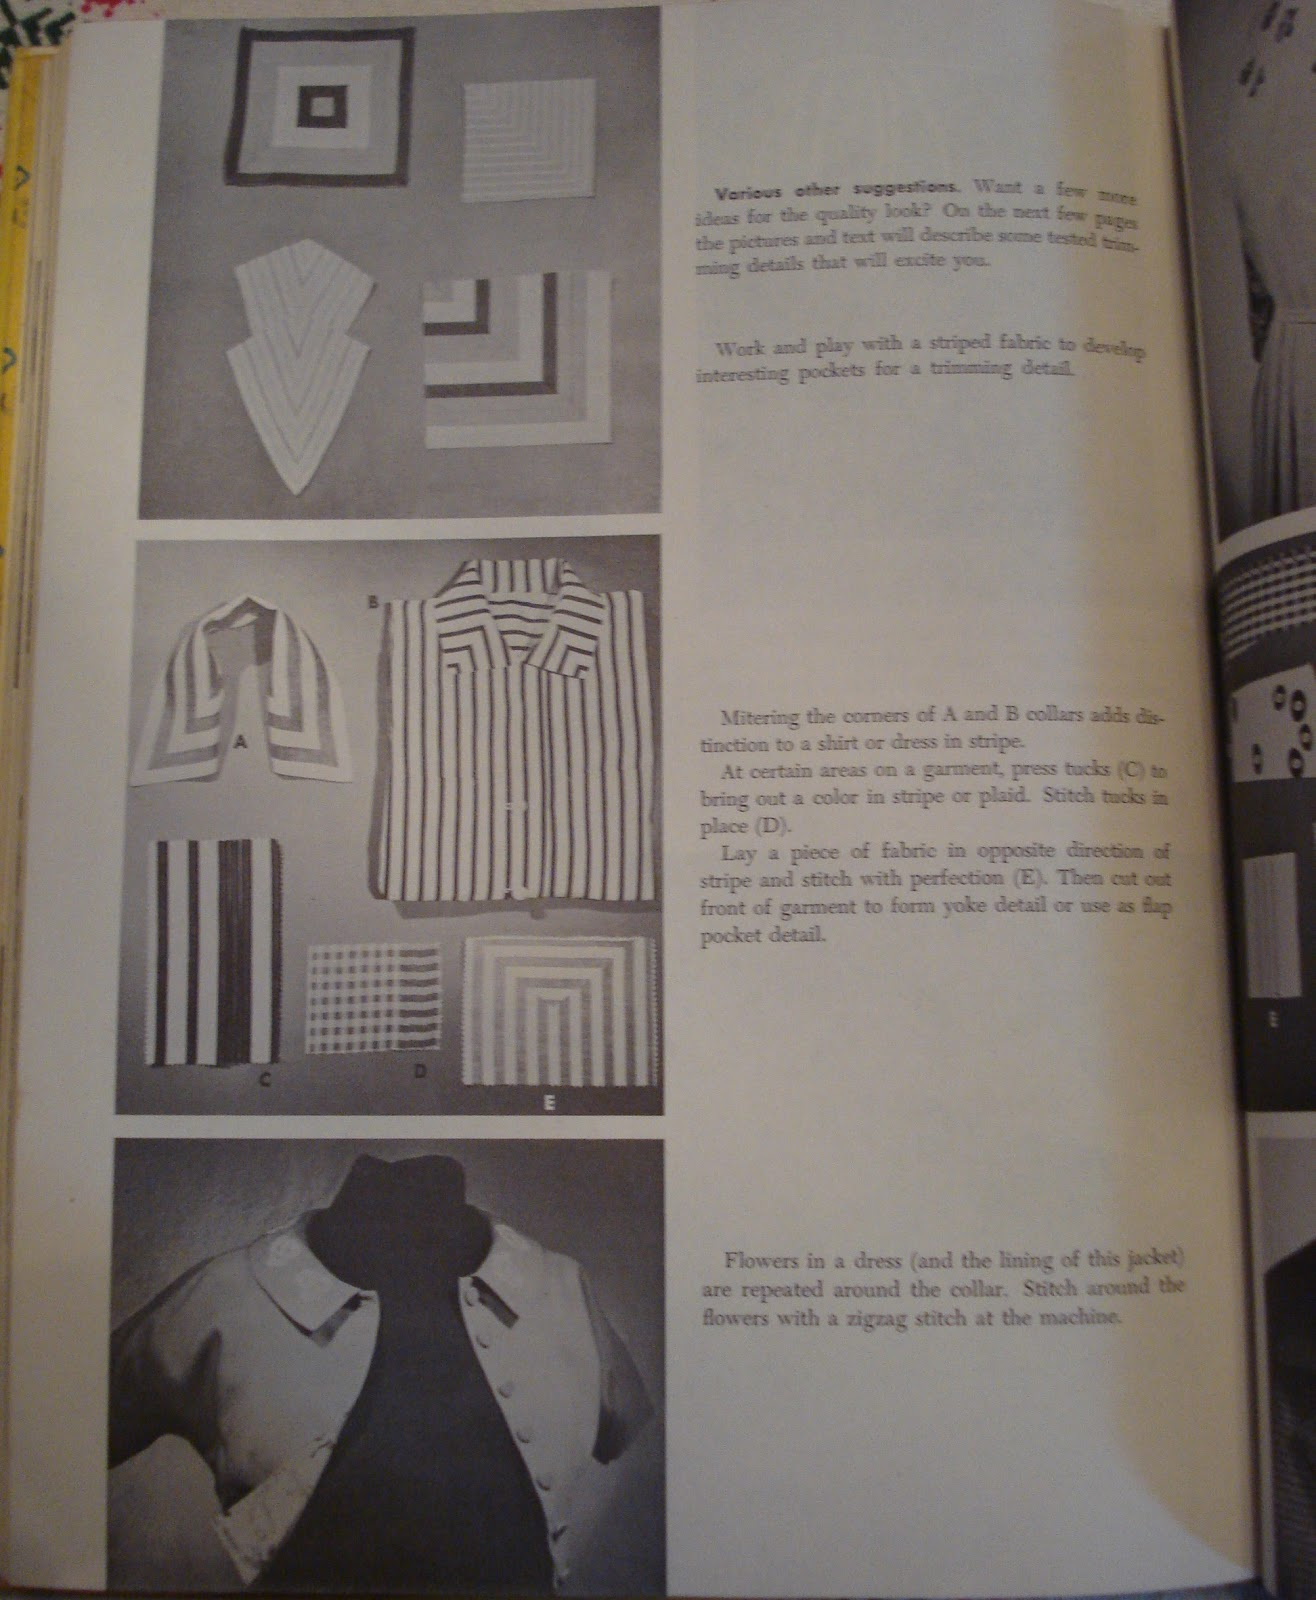 Lippincott S Home Manual Clothing For Women Laura Baldt